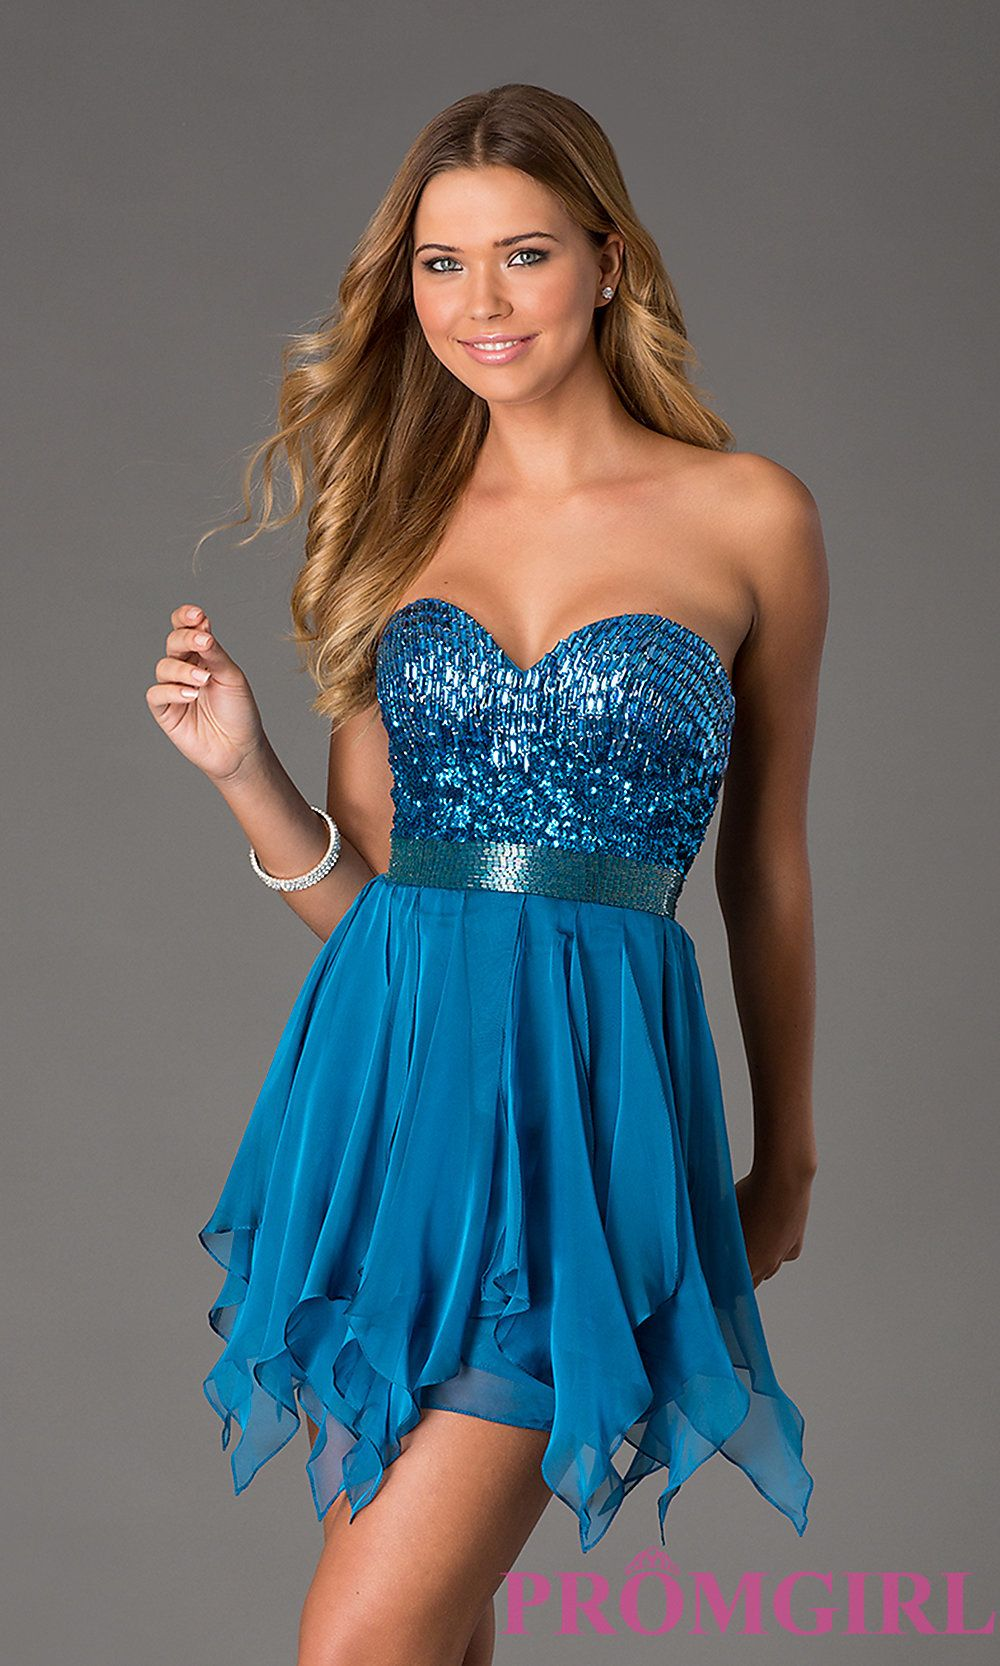 Pin by Brienna N on Dress   Pinterest   Strapless homecoming dresses ...